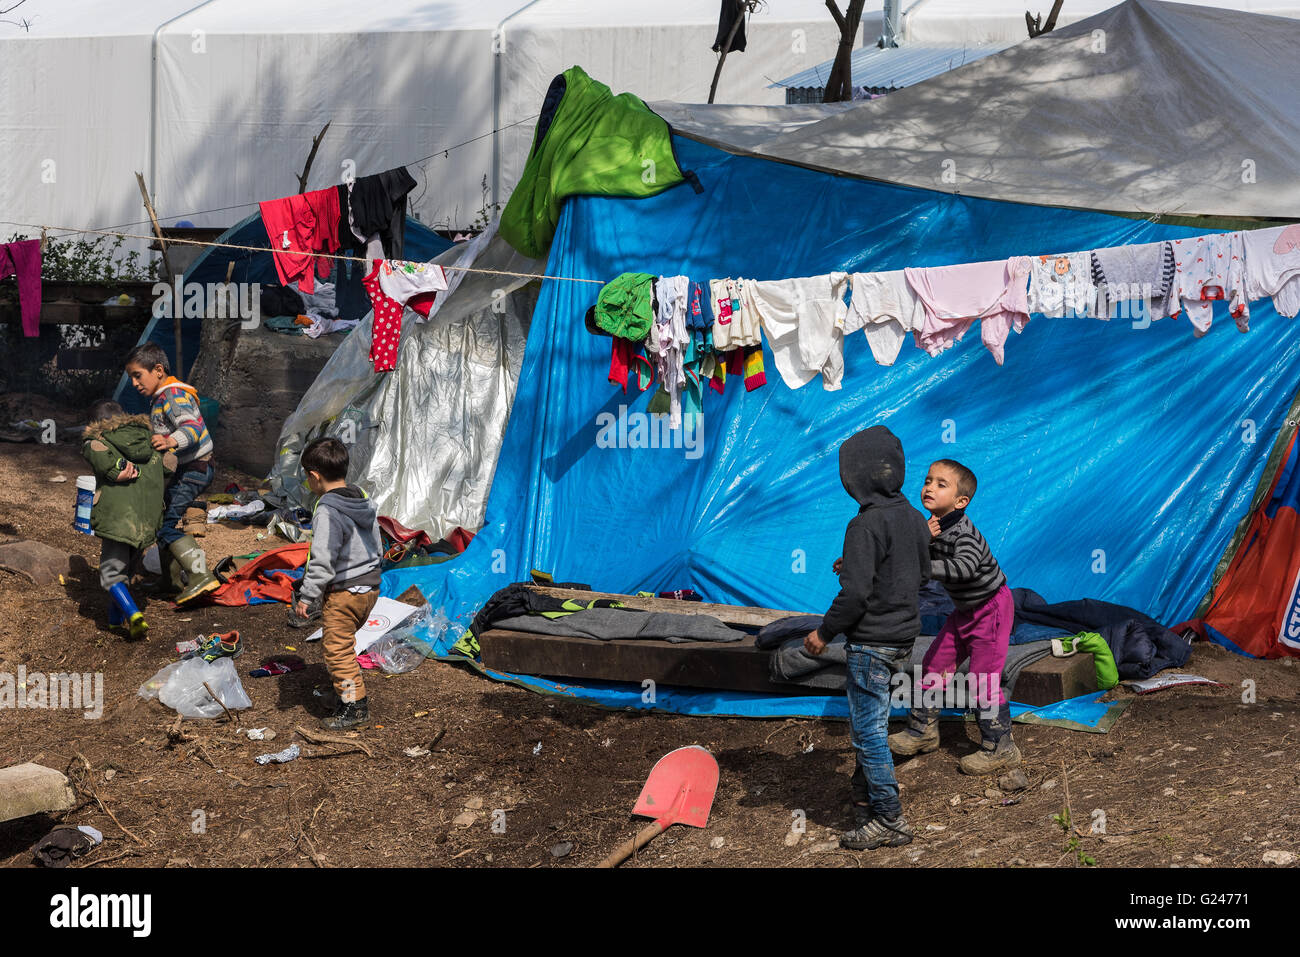 Boys play near their tents on March 17, 2015 in the refugee camp of Idomeni, Greece. - Stock Image